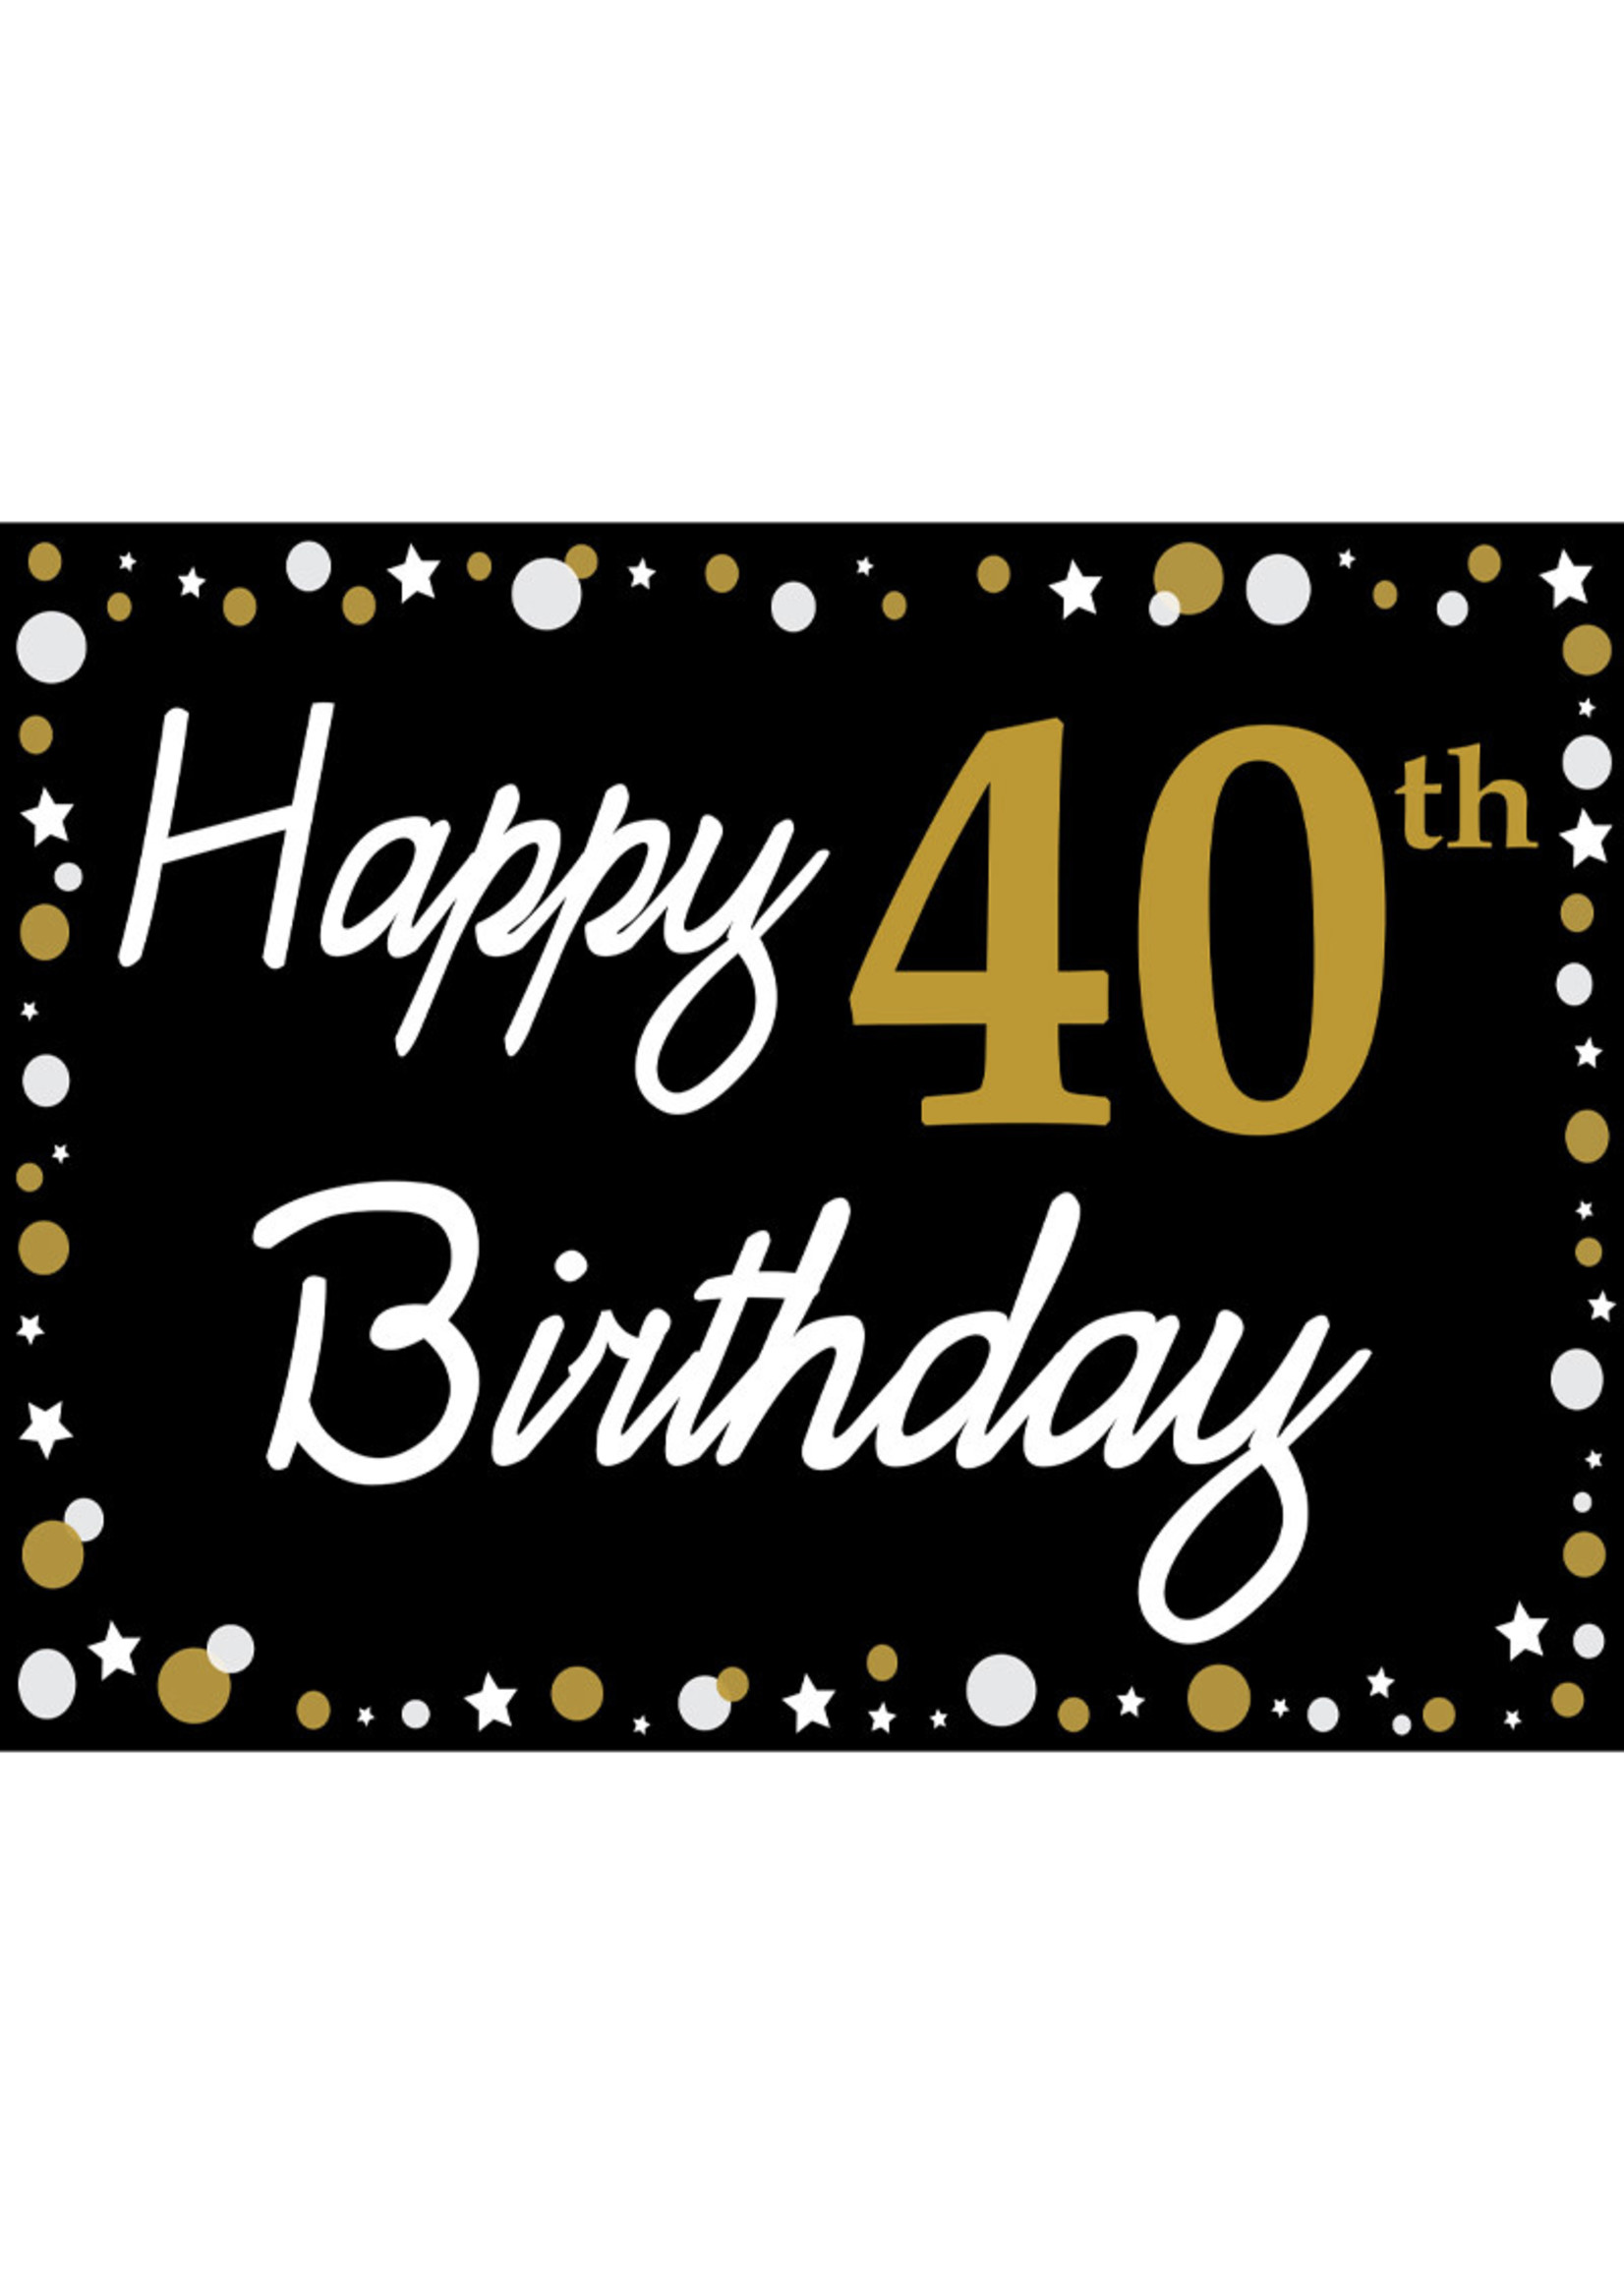 Happy 40th Birthday - Black, Gold & White Yard Sign